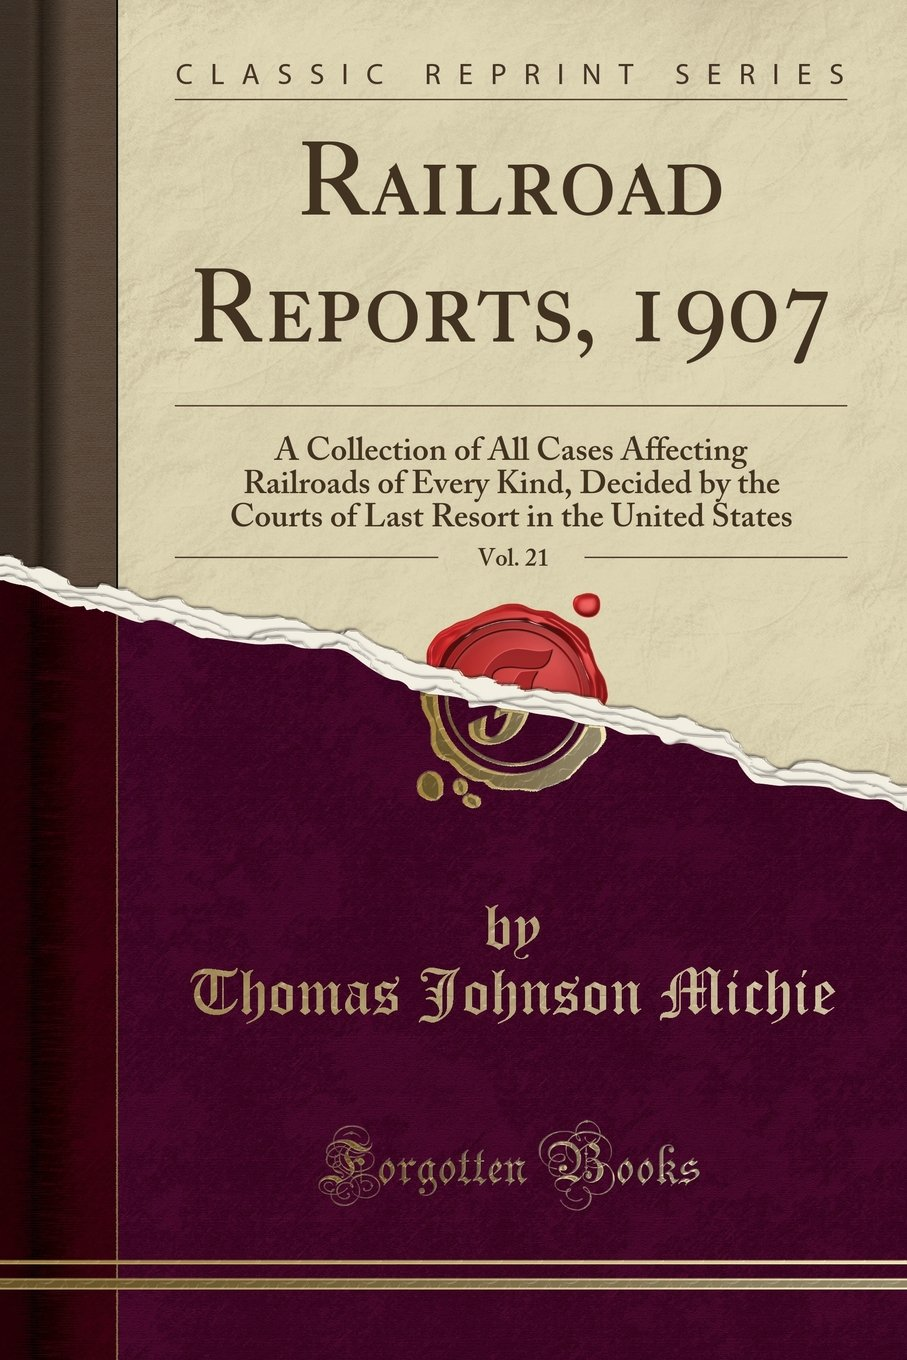 Railroad Reports, 1907, Vol. 21: A Collection of All Cases Affecting Railroads of Every Kind, Decided by the Courts of Last Resort in the United States (Classic Reprint) ebook